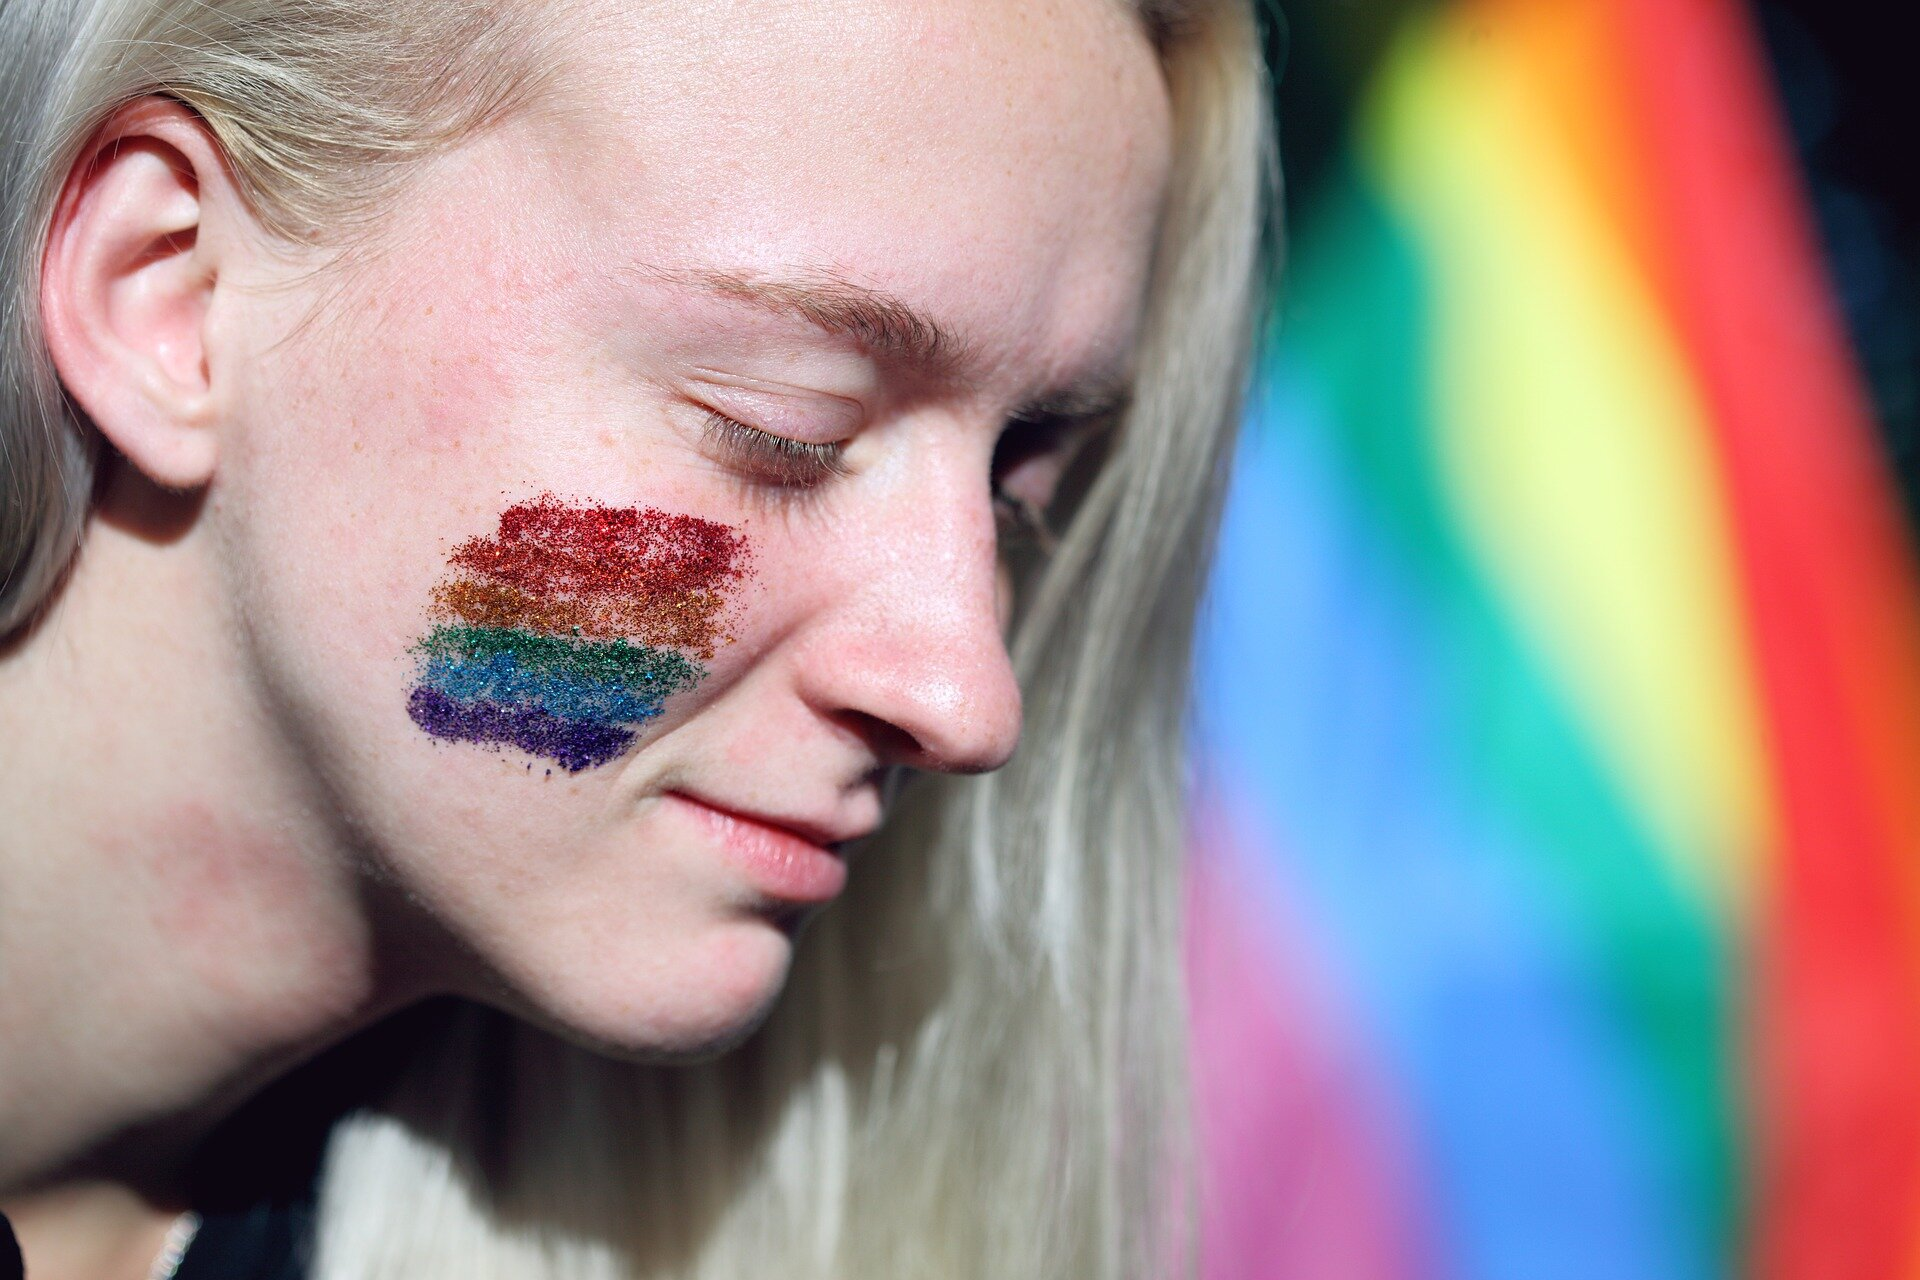 More Teens Coming Out as LGBQ, but Suicide Attempts Still High